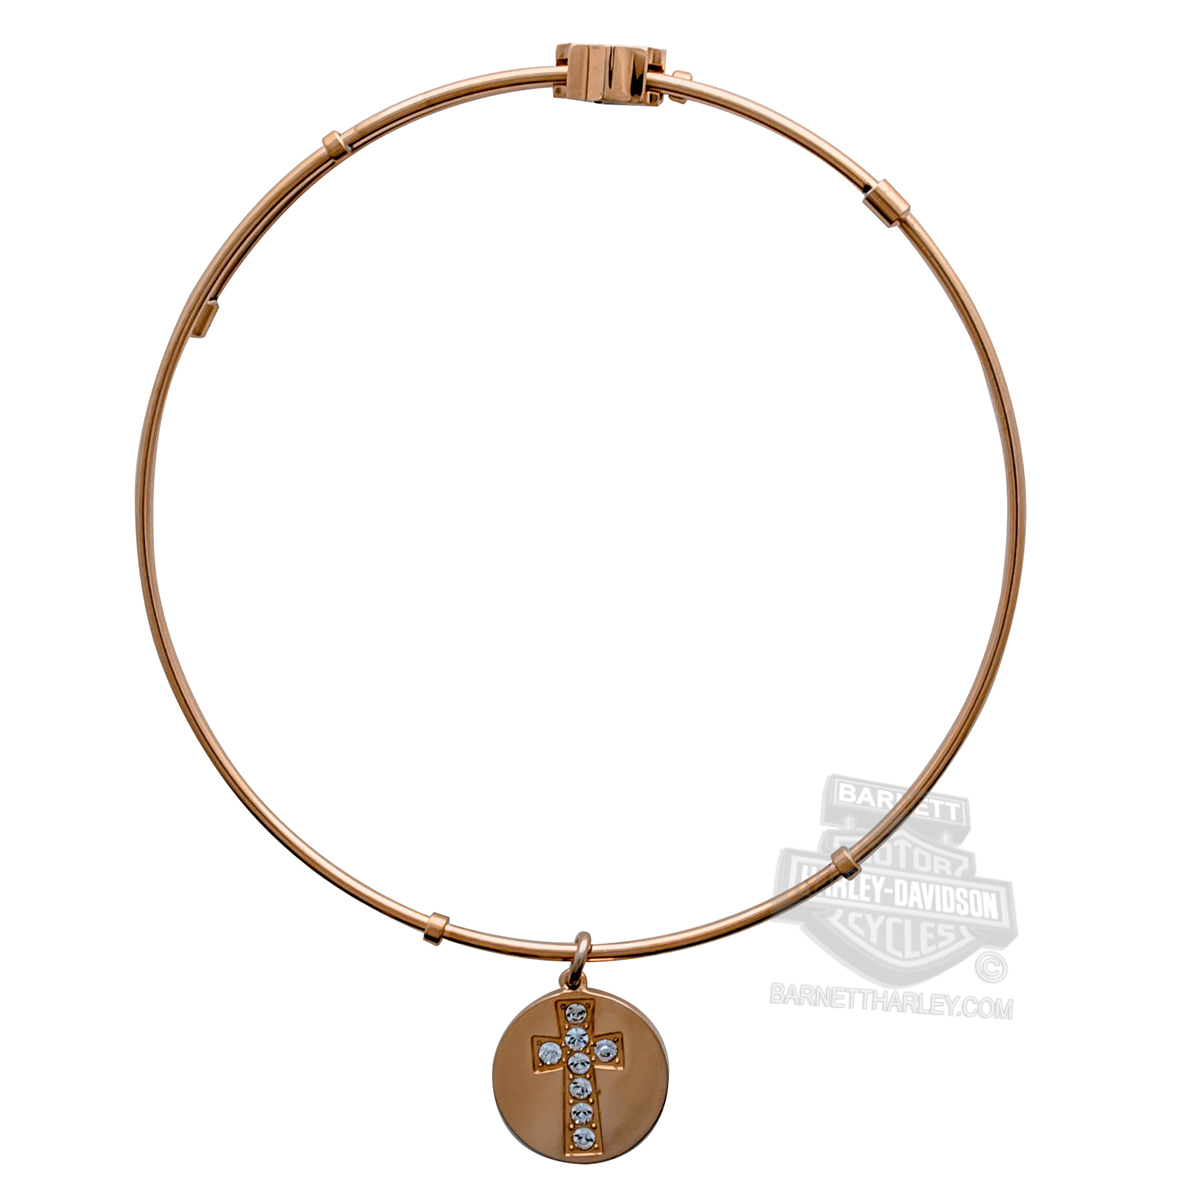 Harley-Davidson® Womens Stainless Steel Gold Tone Bling Cross Charm Bangle Bracelet by Mod Jewelry®